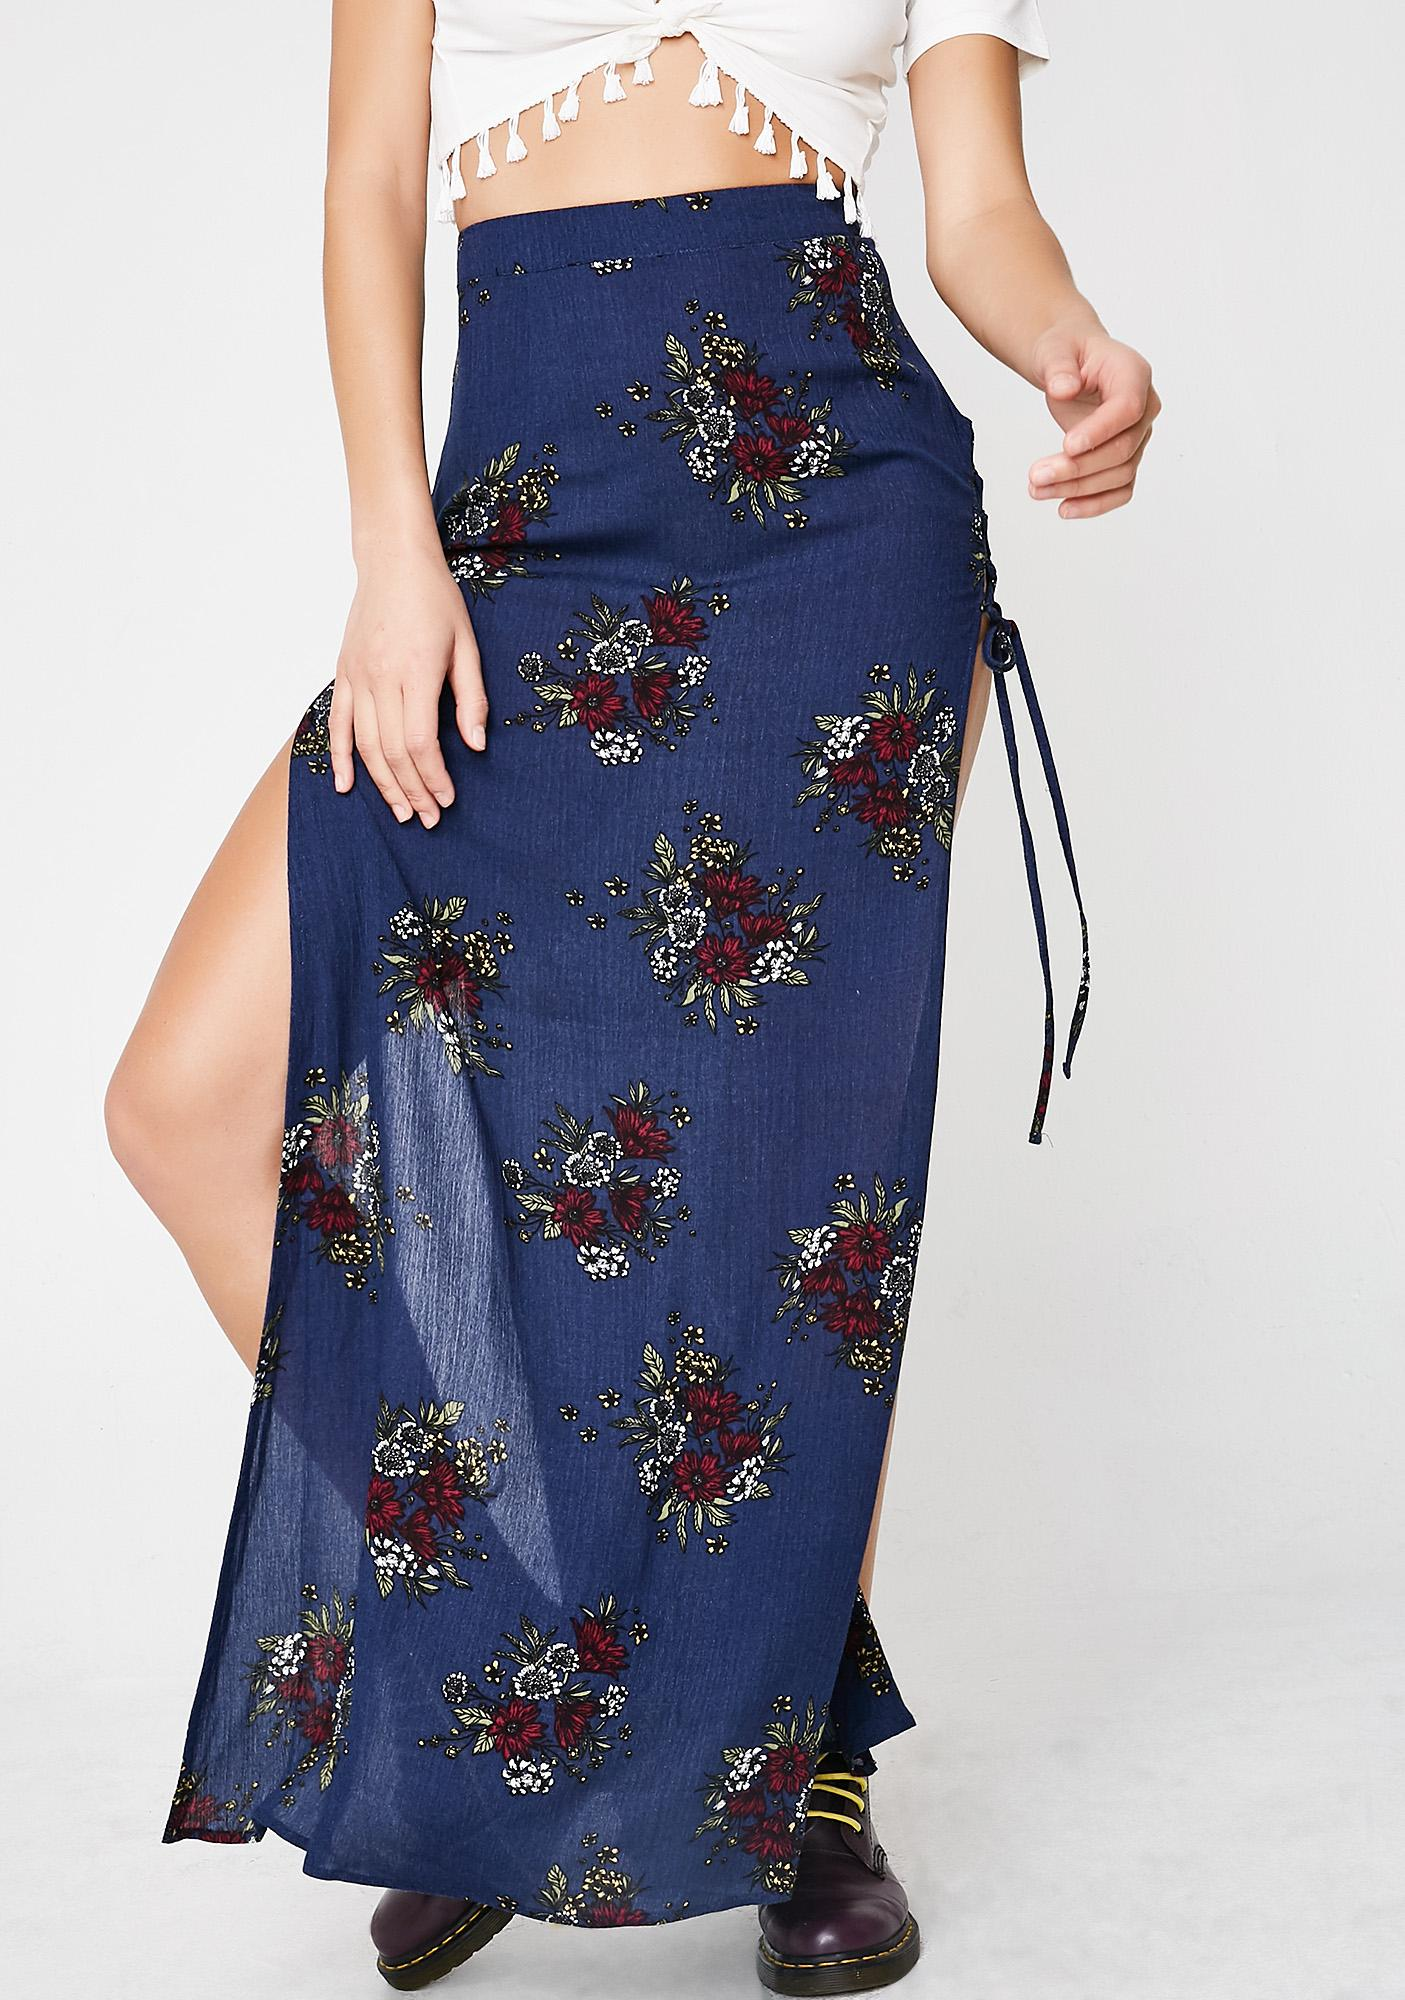 Lira Clothing Shayla Maxi Skirt